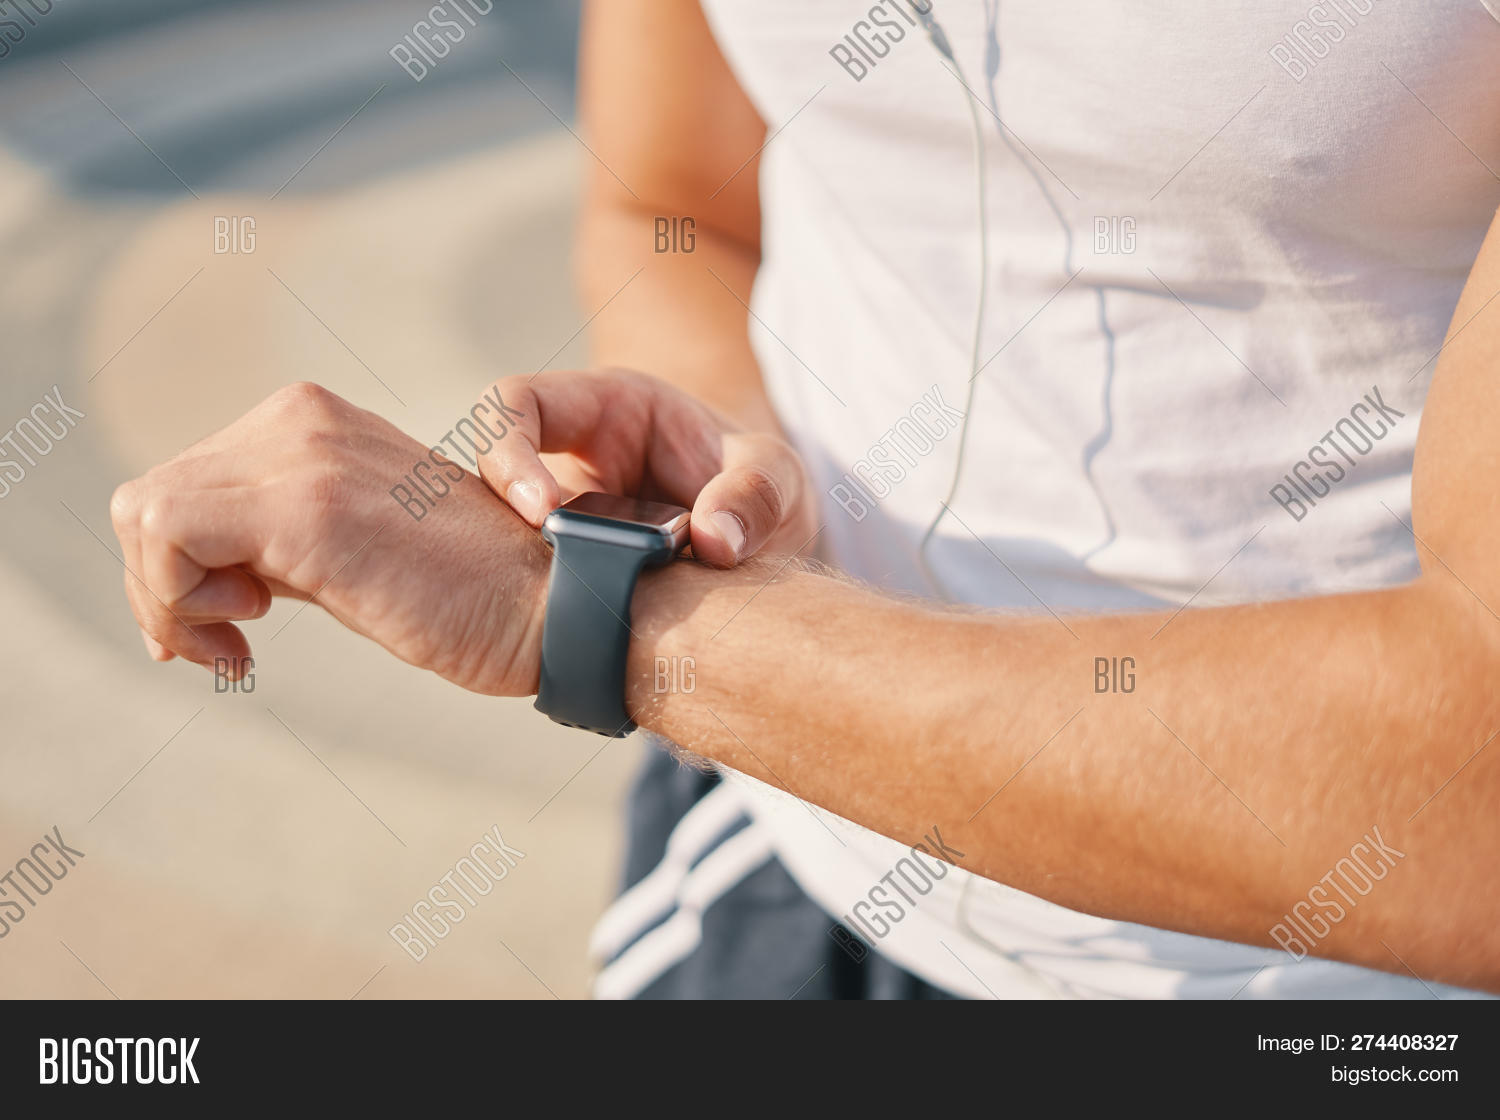 Close-up,Person,Young,accessory,app,application,beets,checking,computer,connection,consumerism,device,digital,display,earphones,exercise,fitness,gadget,gestures,hand,heart,intelligence,internet,making,male,man,measuring,puls,runner,smart,smartwatch,sport,t-shirt,technology,touch,unrecognizable,using,watch,wearable,white